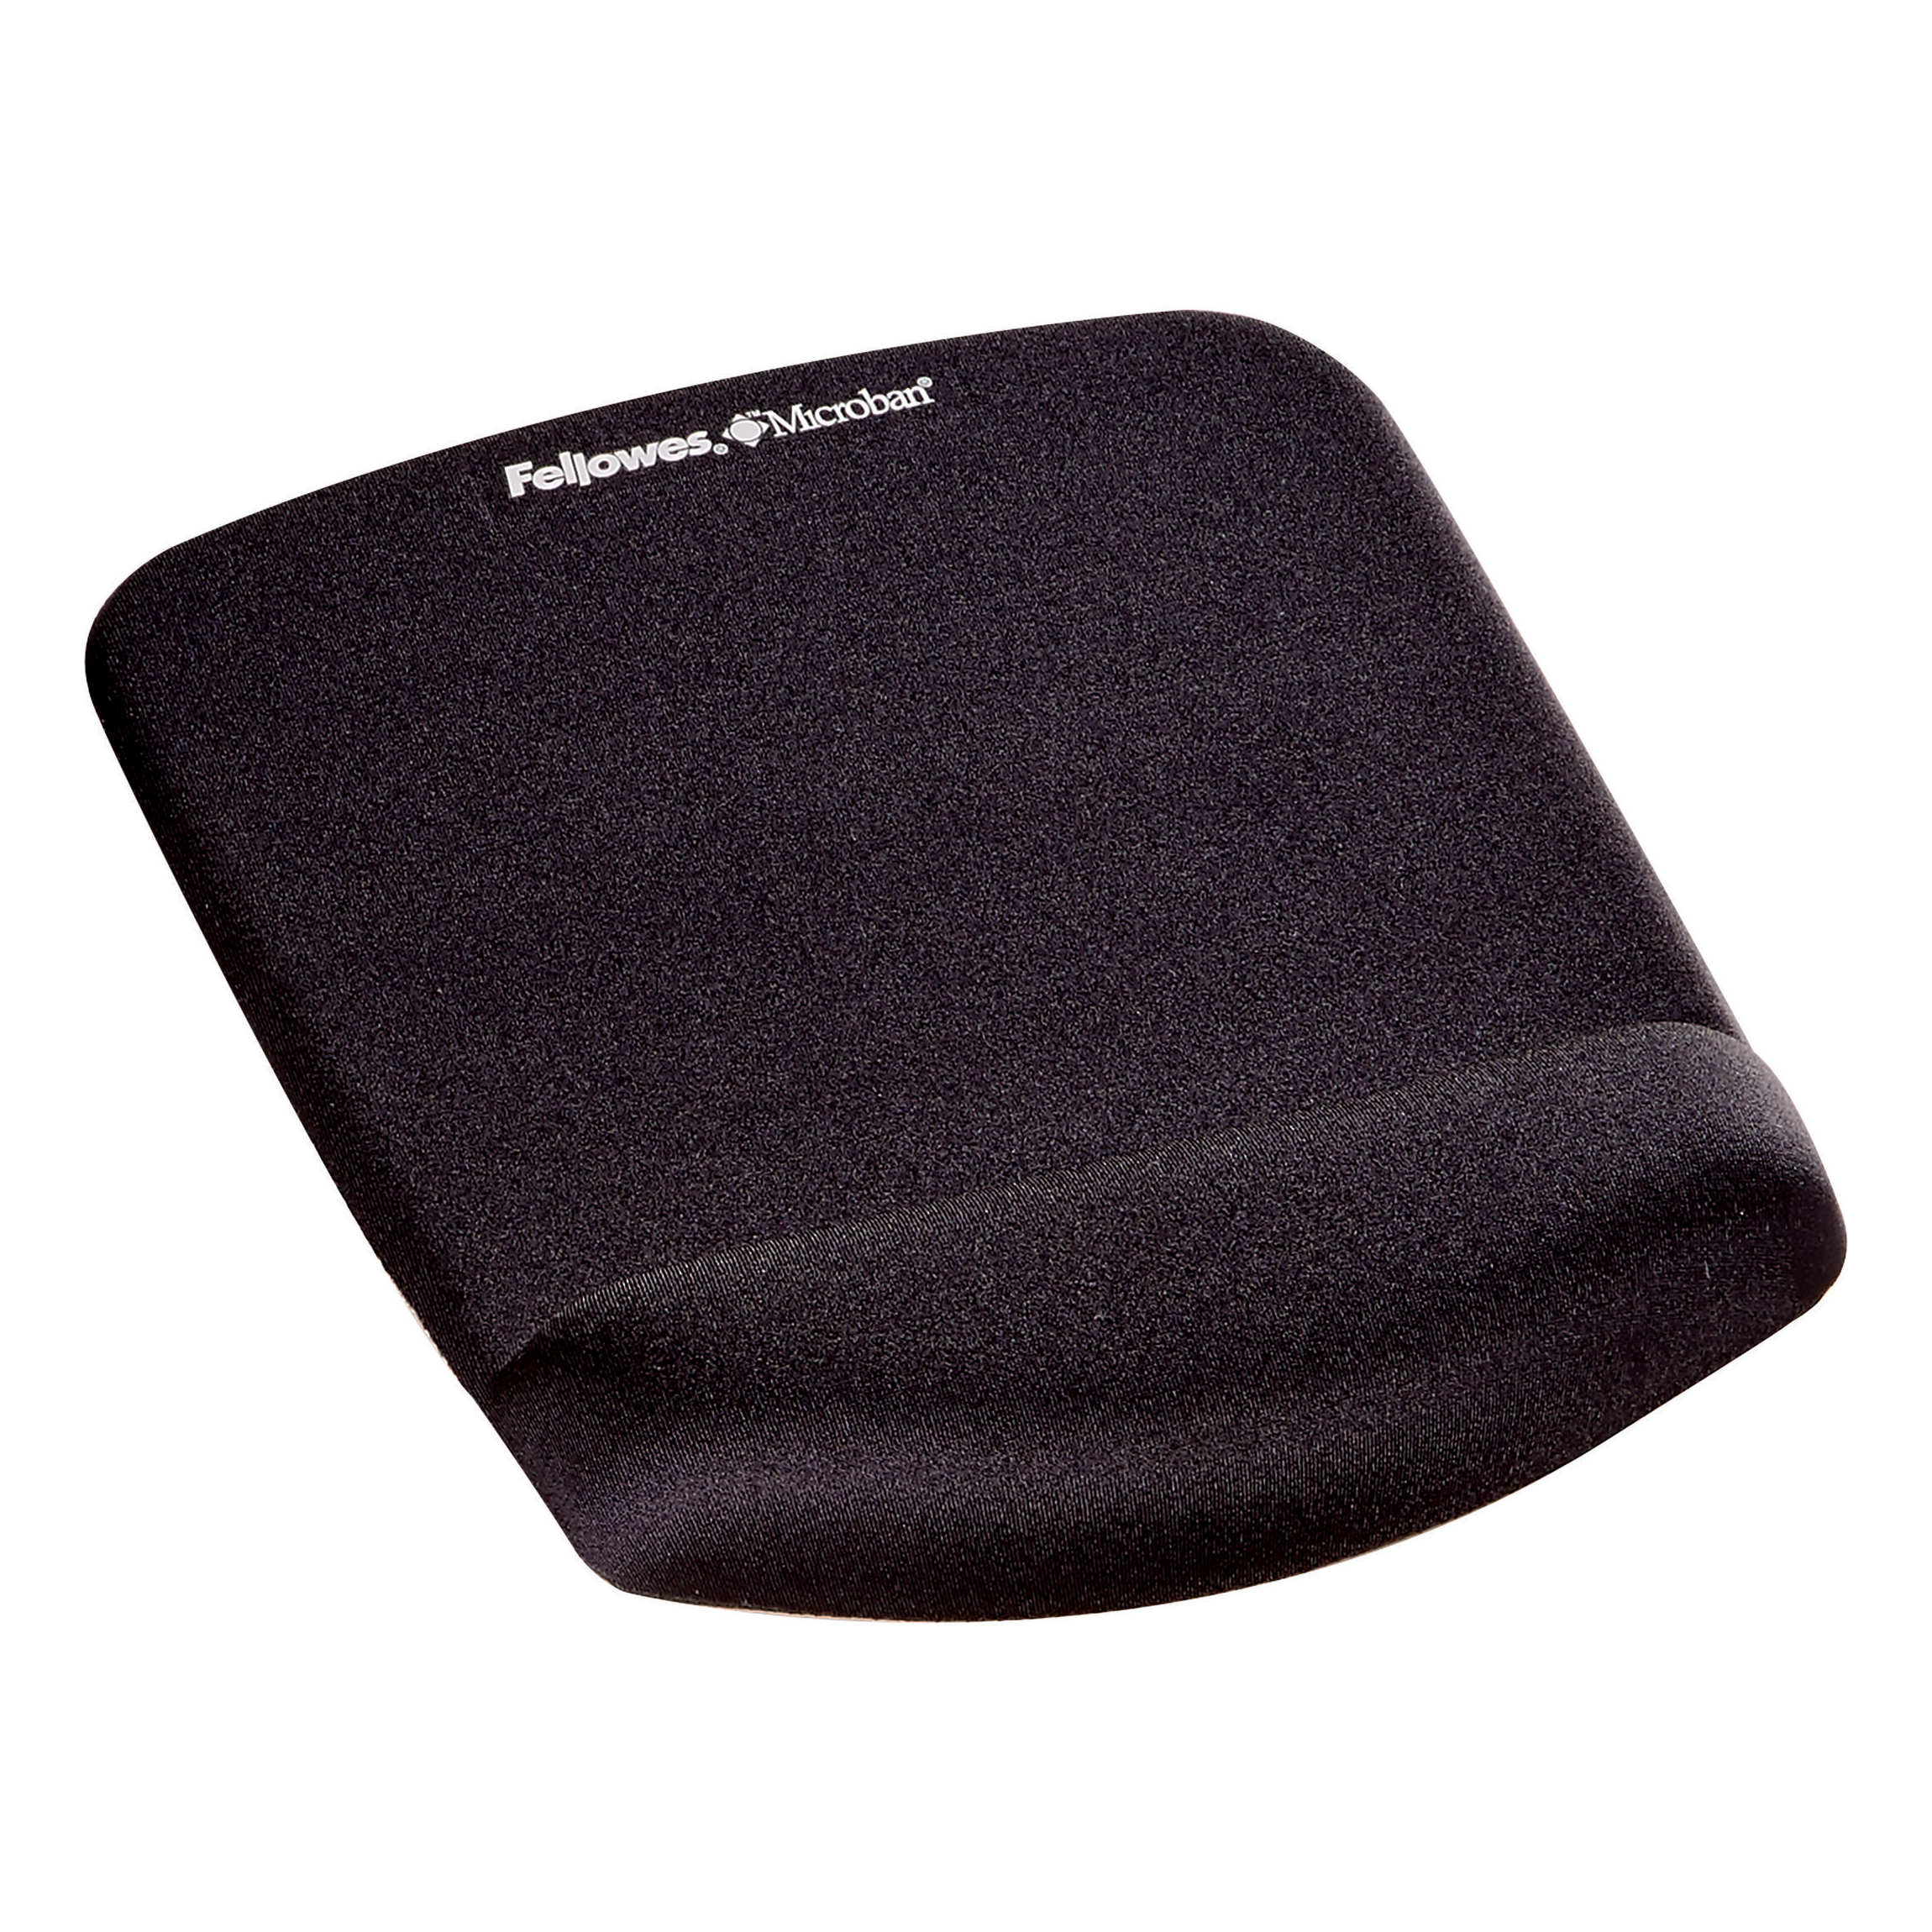 Mouse pads Fellowes PlushTouch Mousepad Wrist Support Black- Microban 9252003